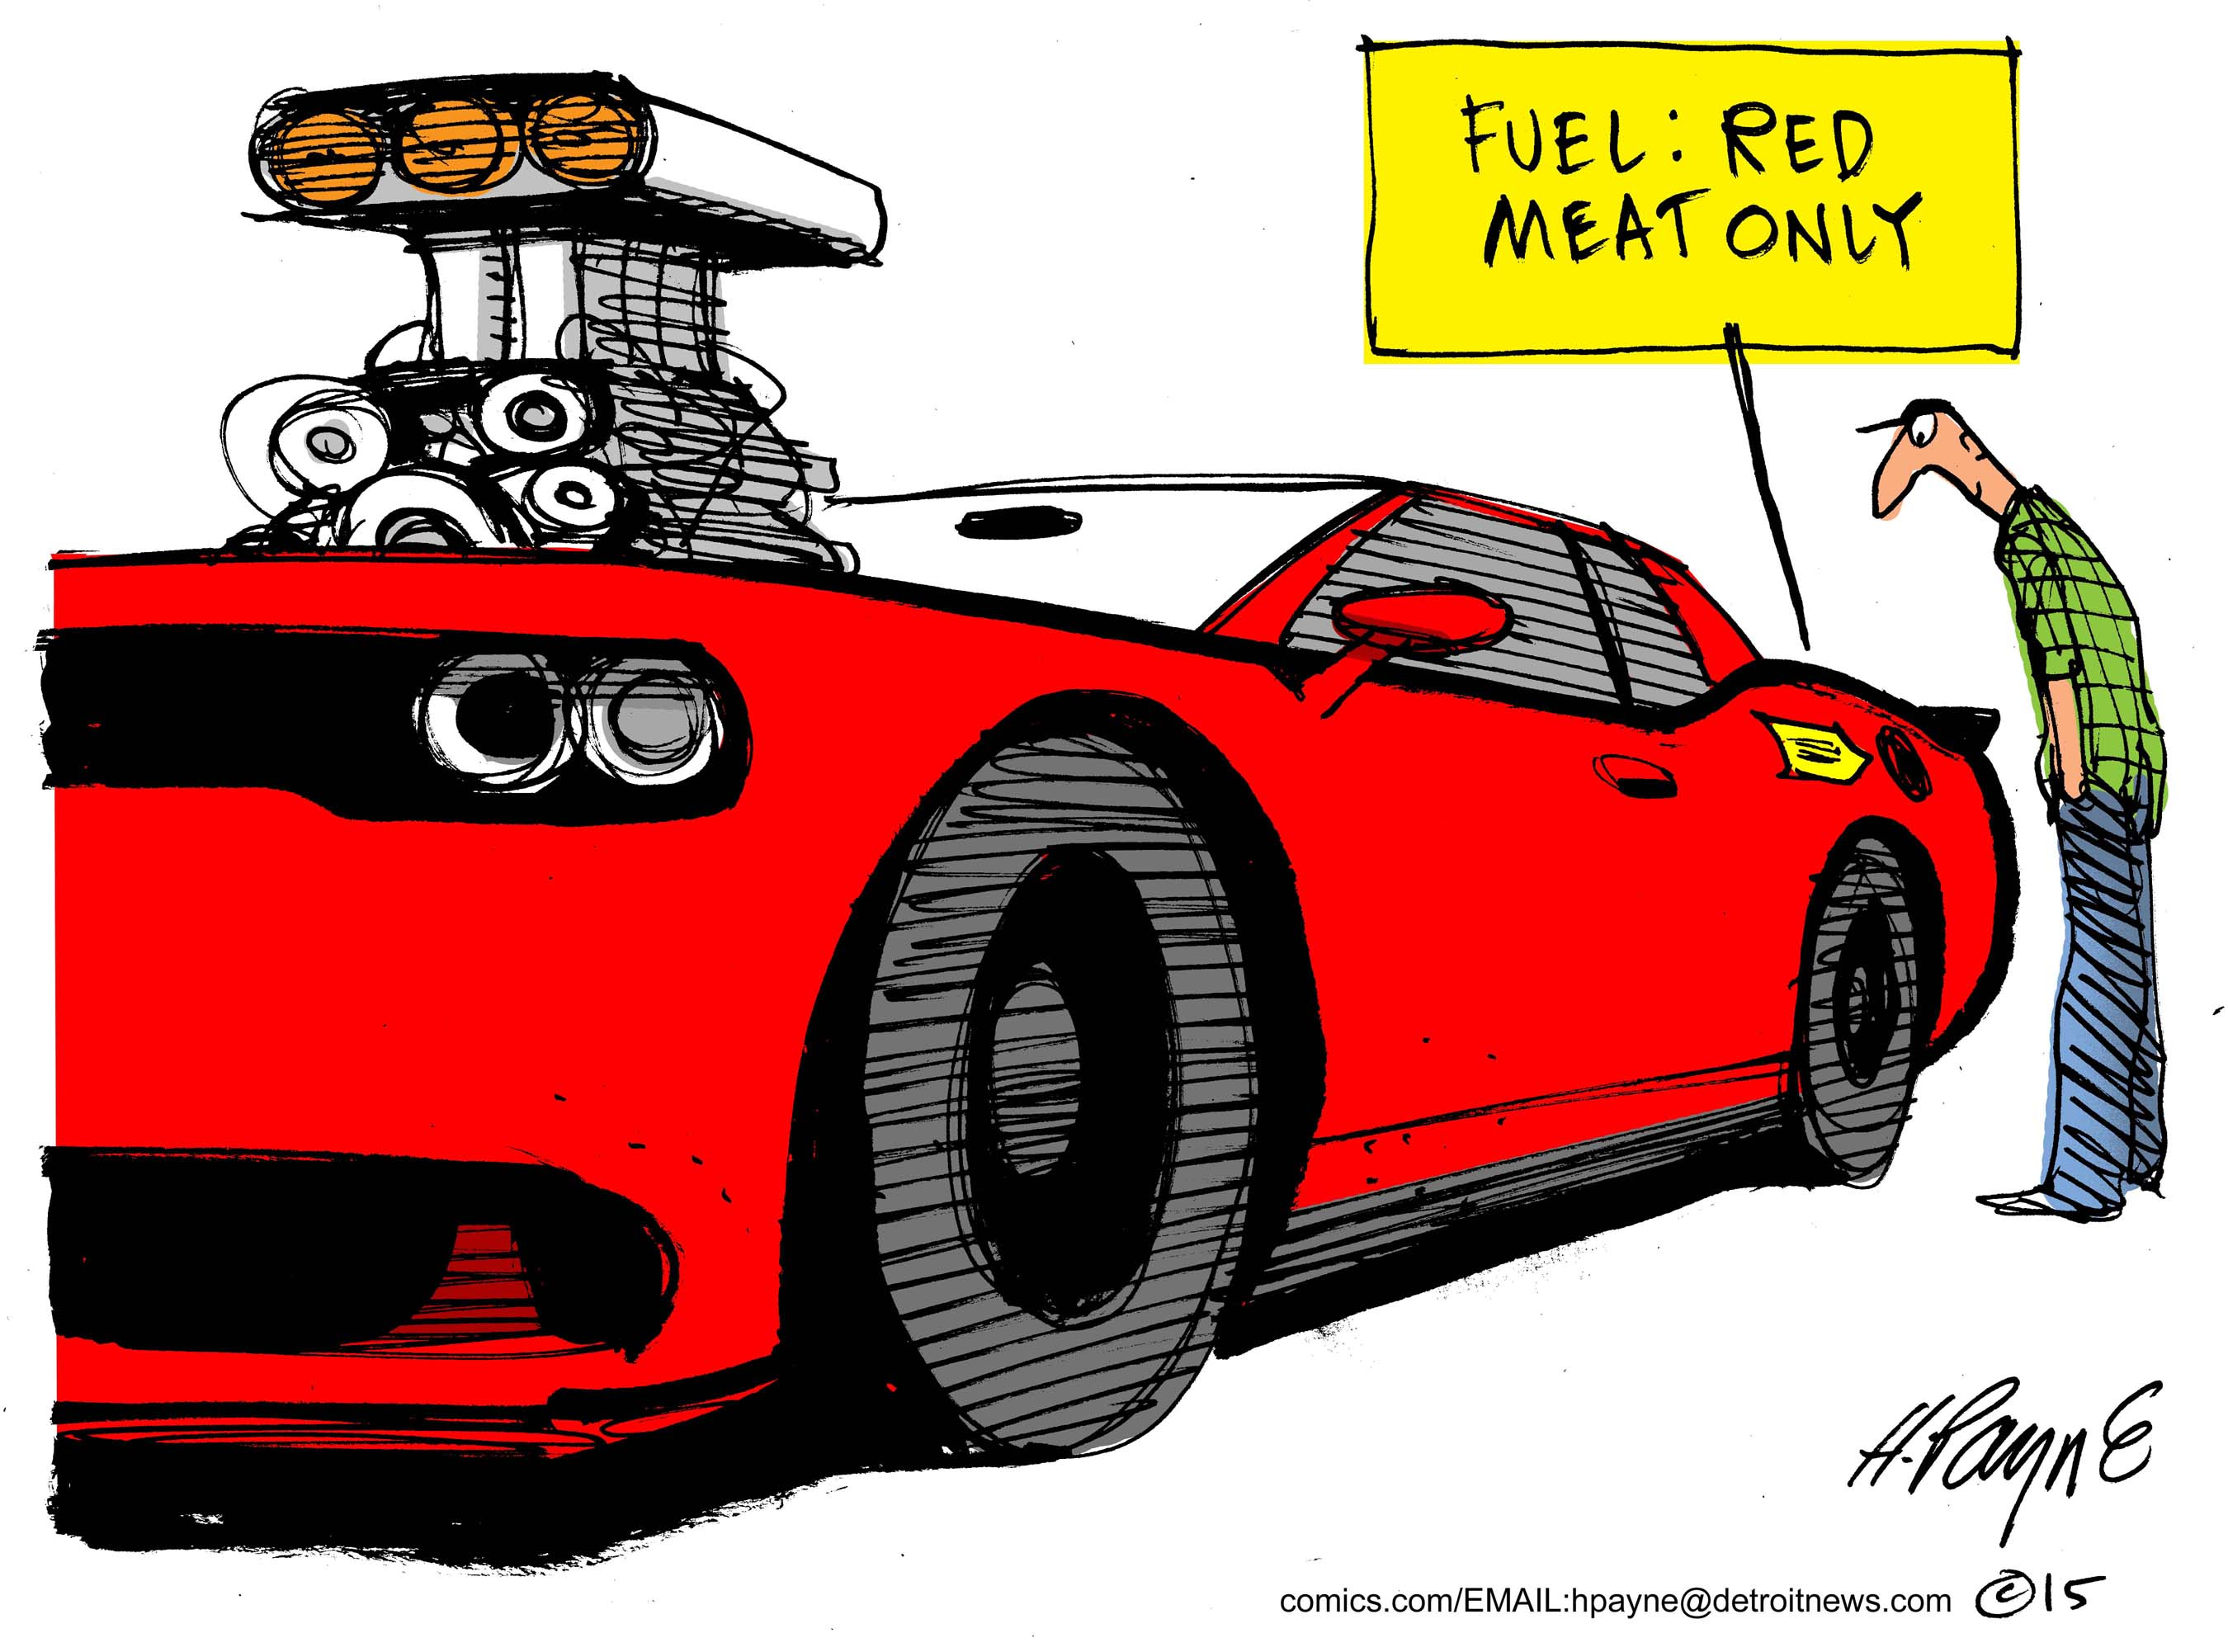 Auction_CARtoon_DodgeRedMeat_COLOR